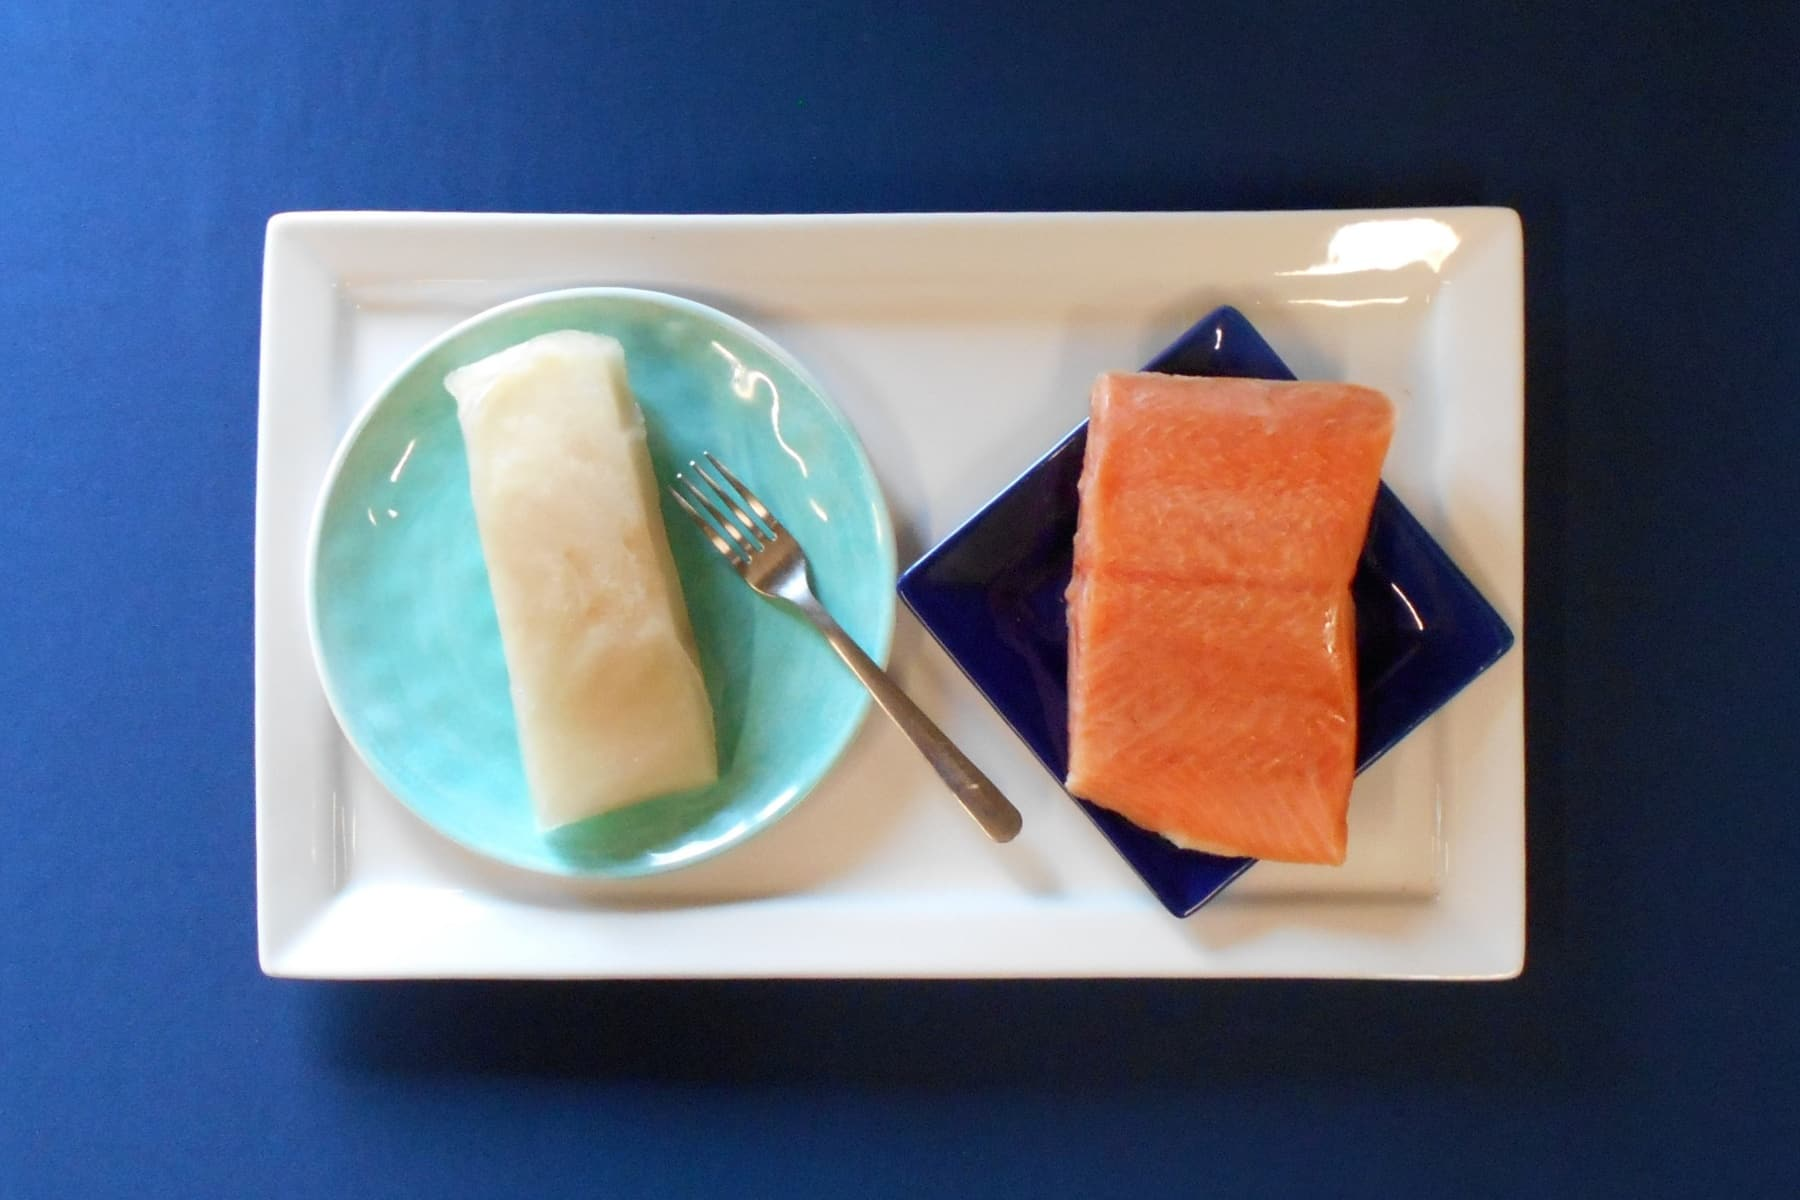 Fresh Wild Alaskan Halibut and Coho Salmon Combo - Plated